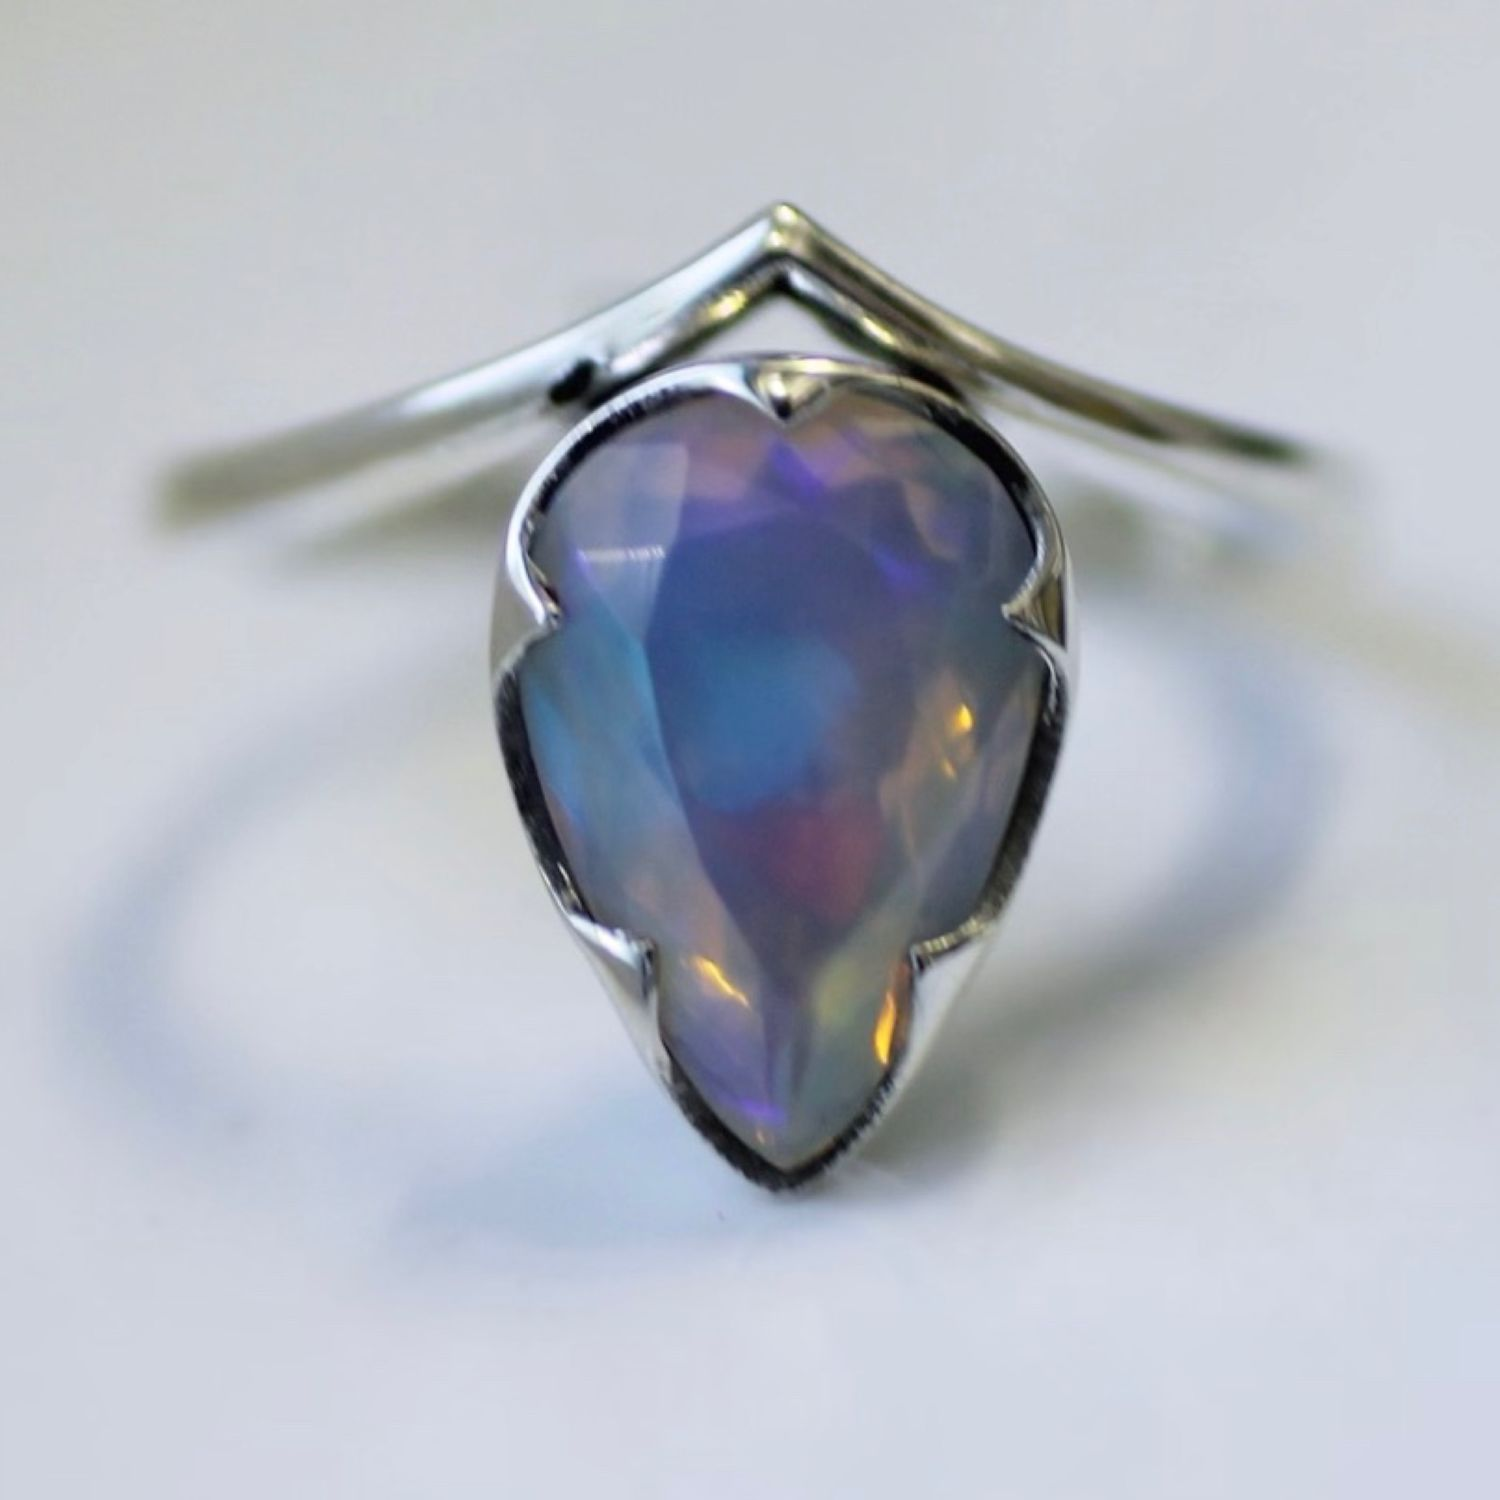 Ring 'Valencia' with natural Opal, Rings, Moscow,  Фото №1